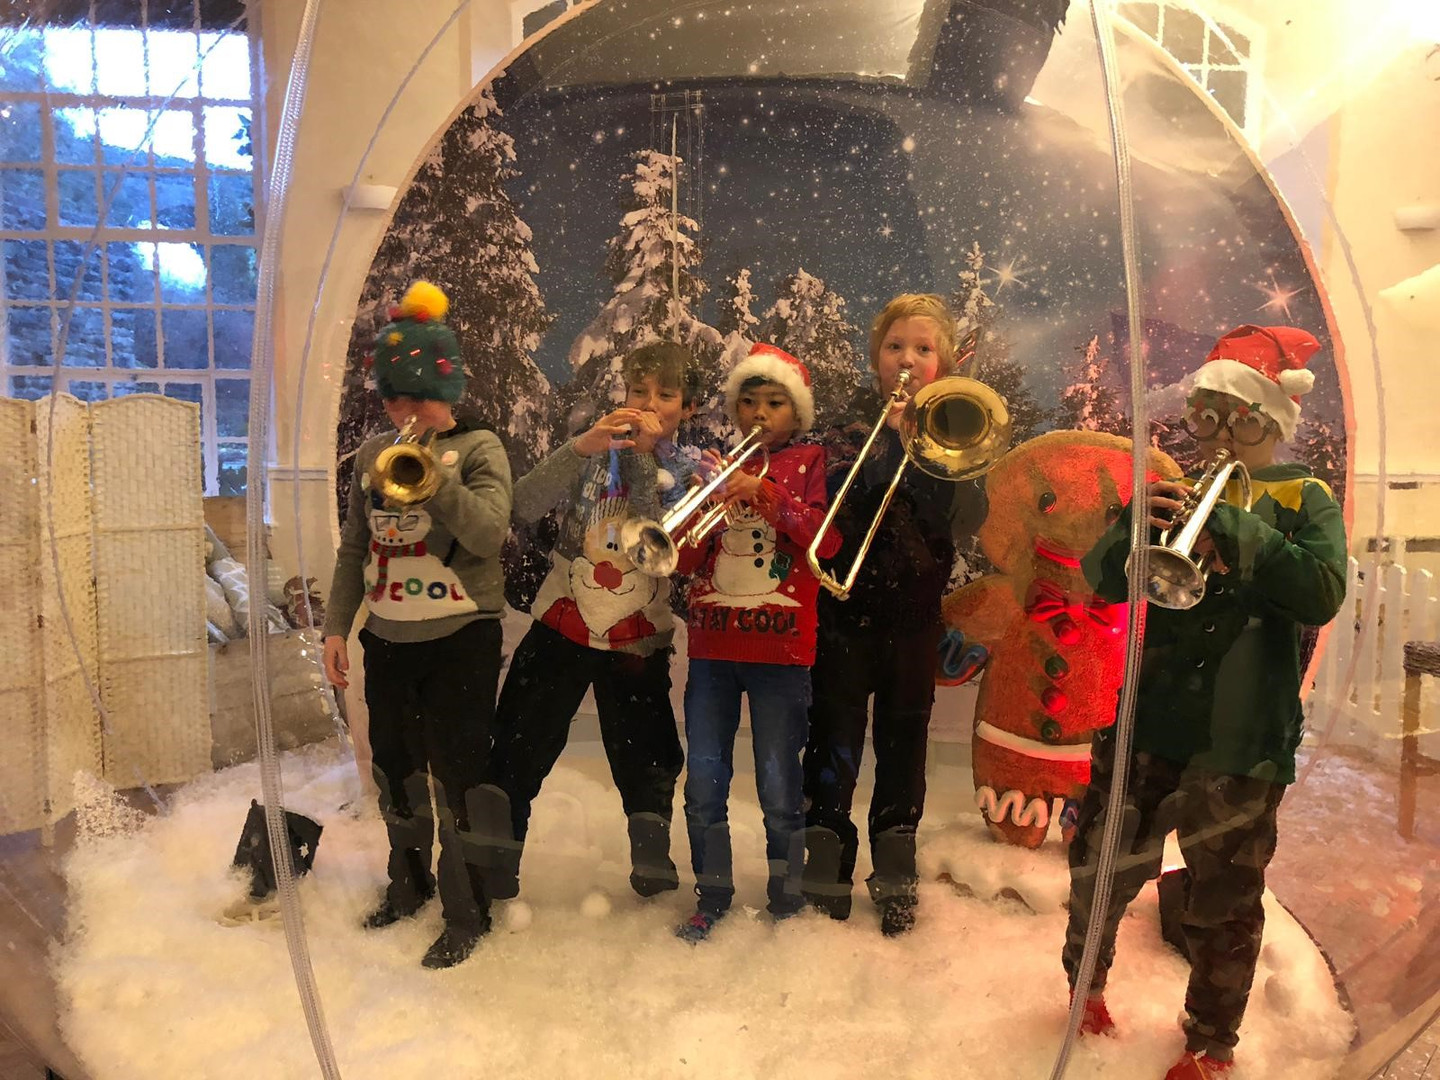 Hire a Giant Snow globe with fake snow